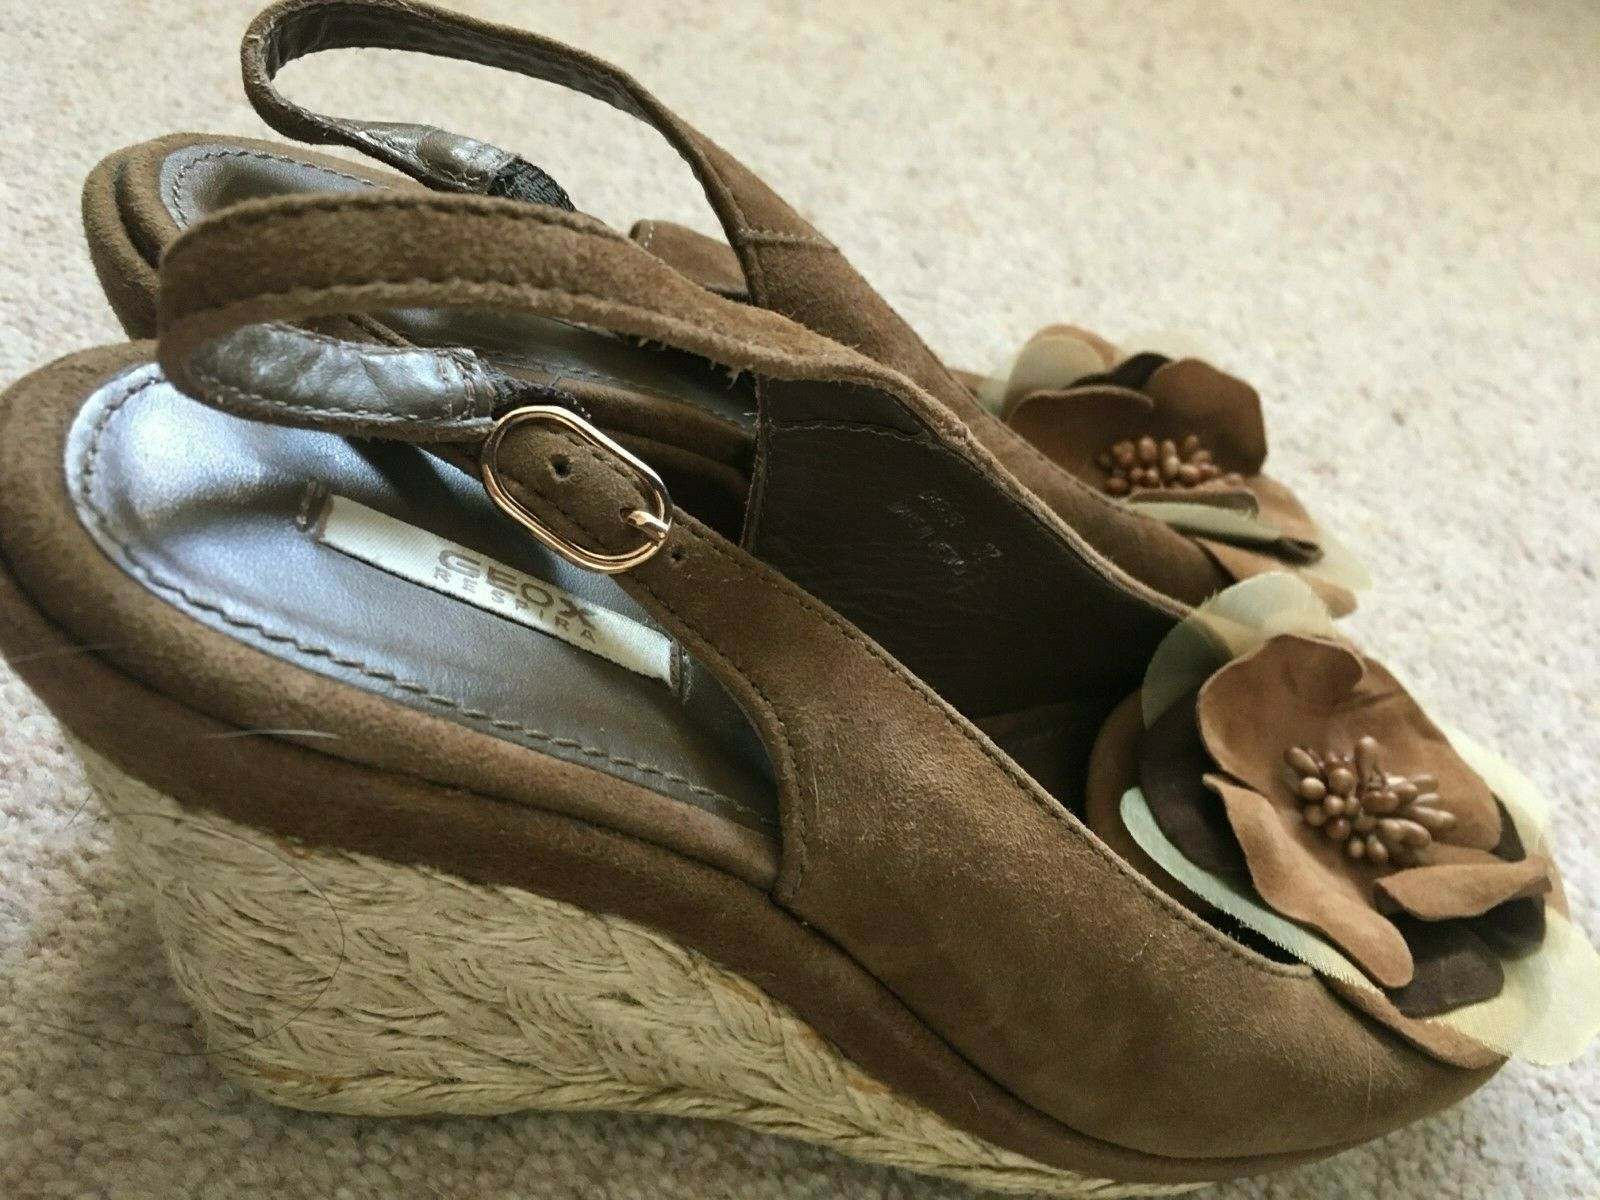 GEOX BROWN SUEDE LEATHER WEDGE SANDALS 4 (37)